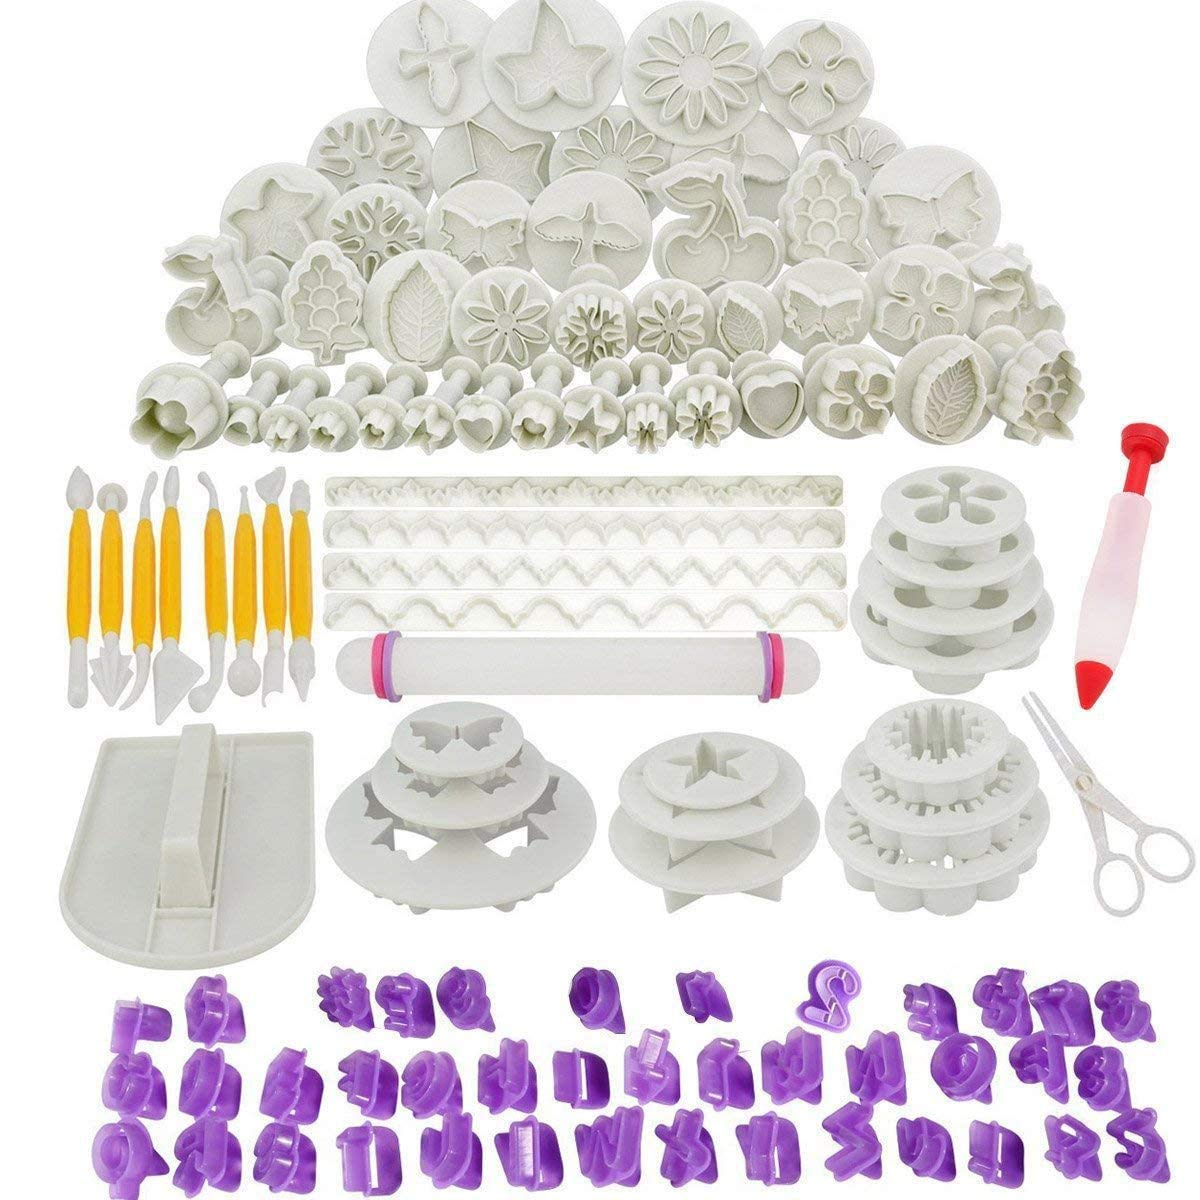 Abimars 110pcs Cake Decorating Tools Fondant Icing Cutters Sugarcraft Tools Kit Plunger Cutters Rose Flower Leaf Moulds Cup Cake Cookie Alphanumeric Characters Moulds Set